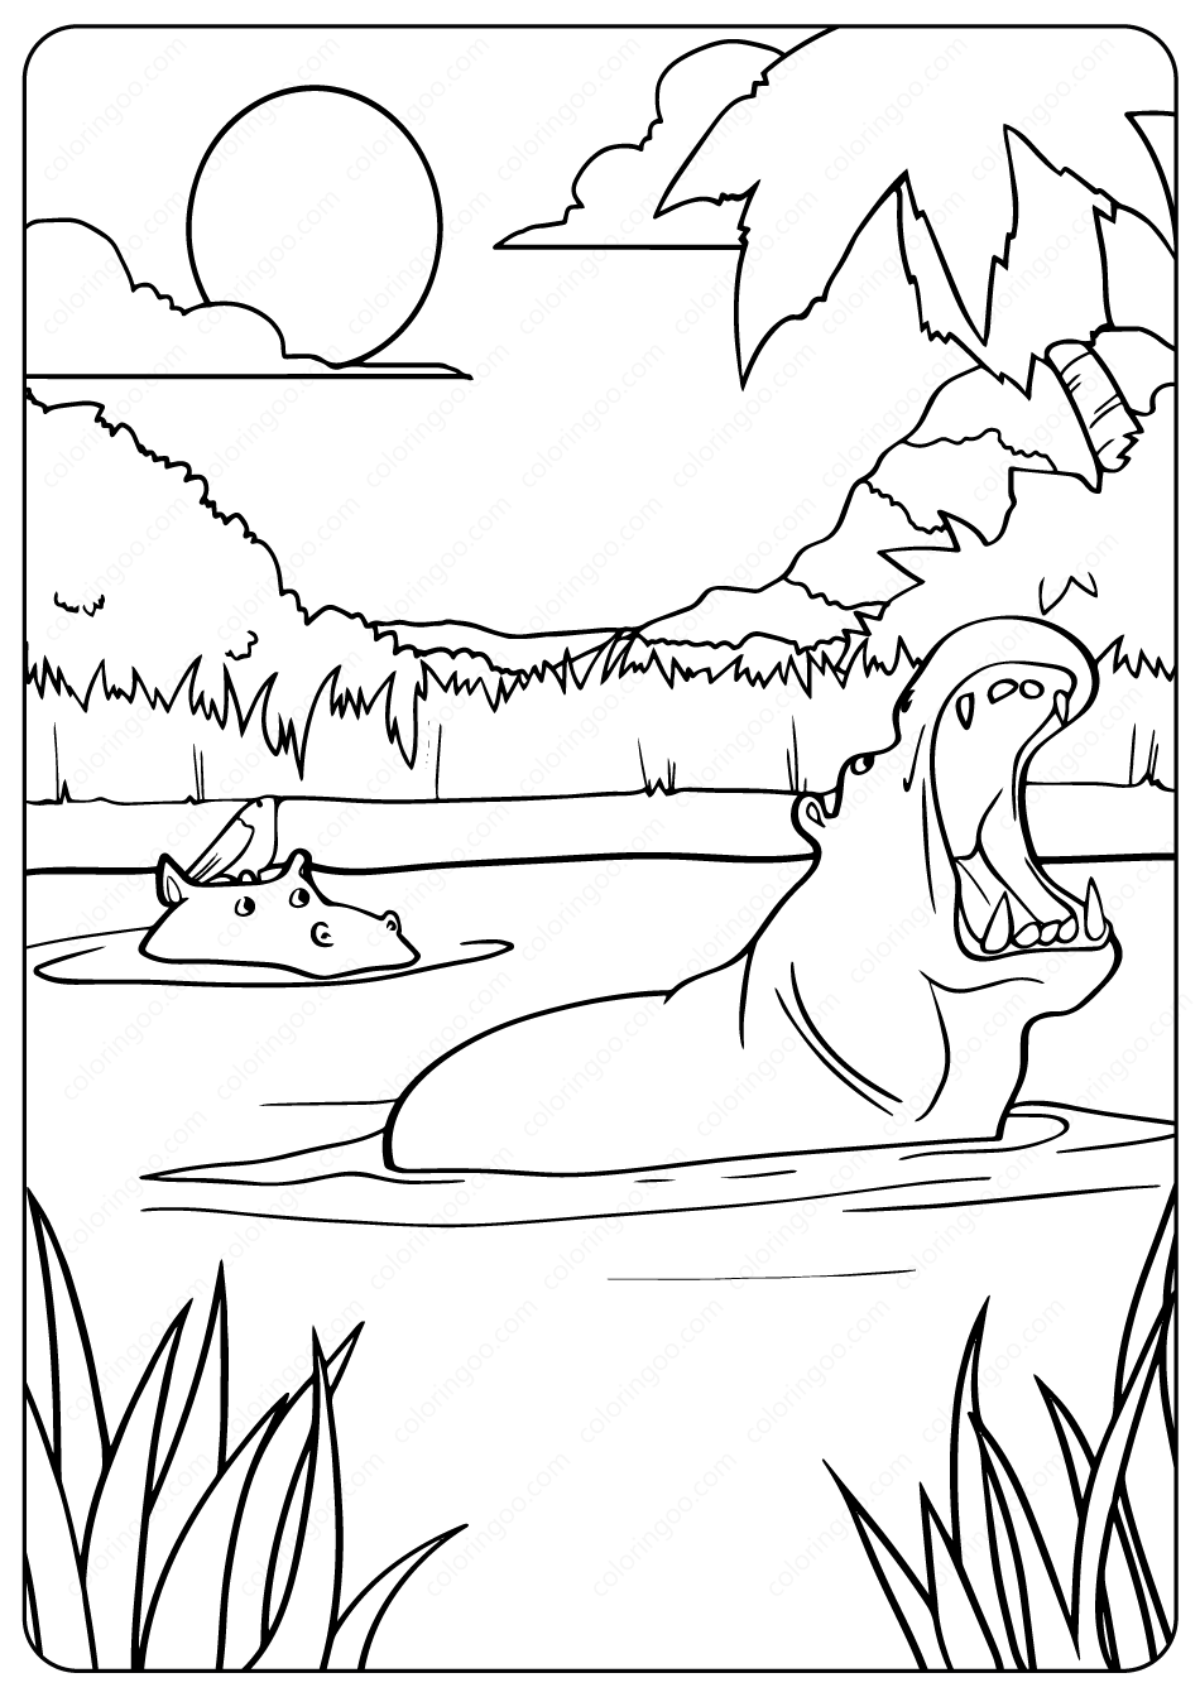 Hippopotamus (Hippo) coloring page - Animals Town - animals color ... | 1697x1200